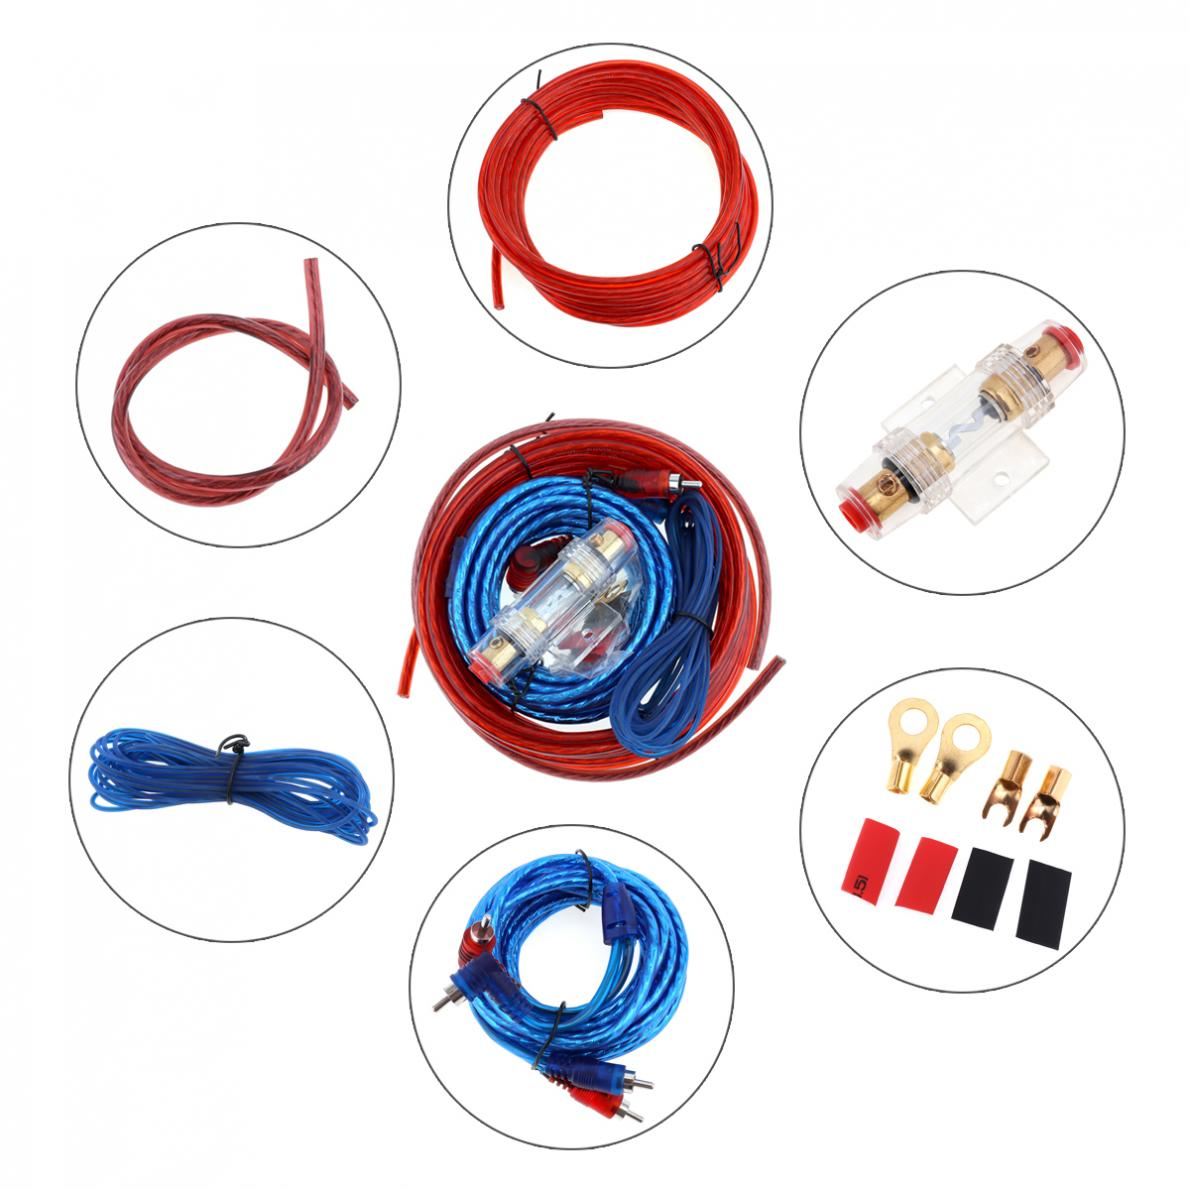 hight resolution of car auto audio power amplifier car subwoofer speaker installation wiring kits cables car audio line power